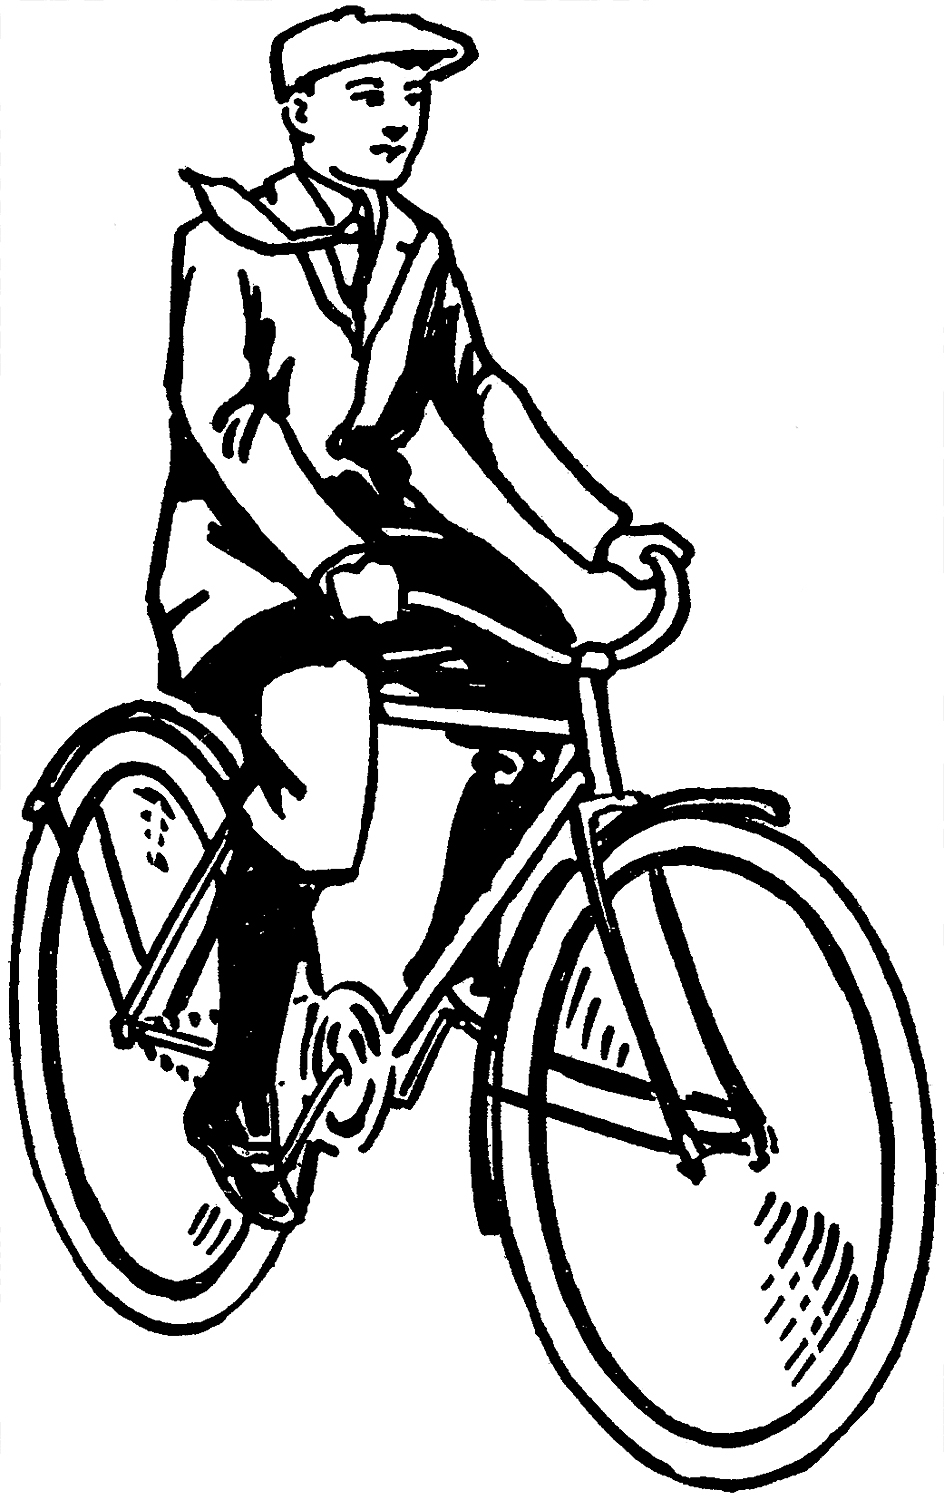 Charming Man Riding Bicycle Clip Art